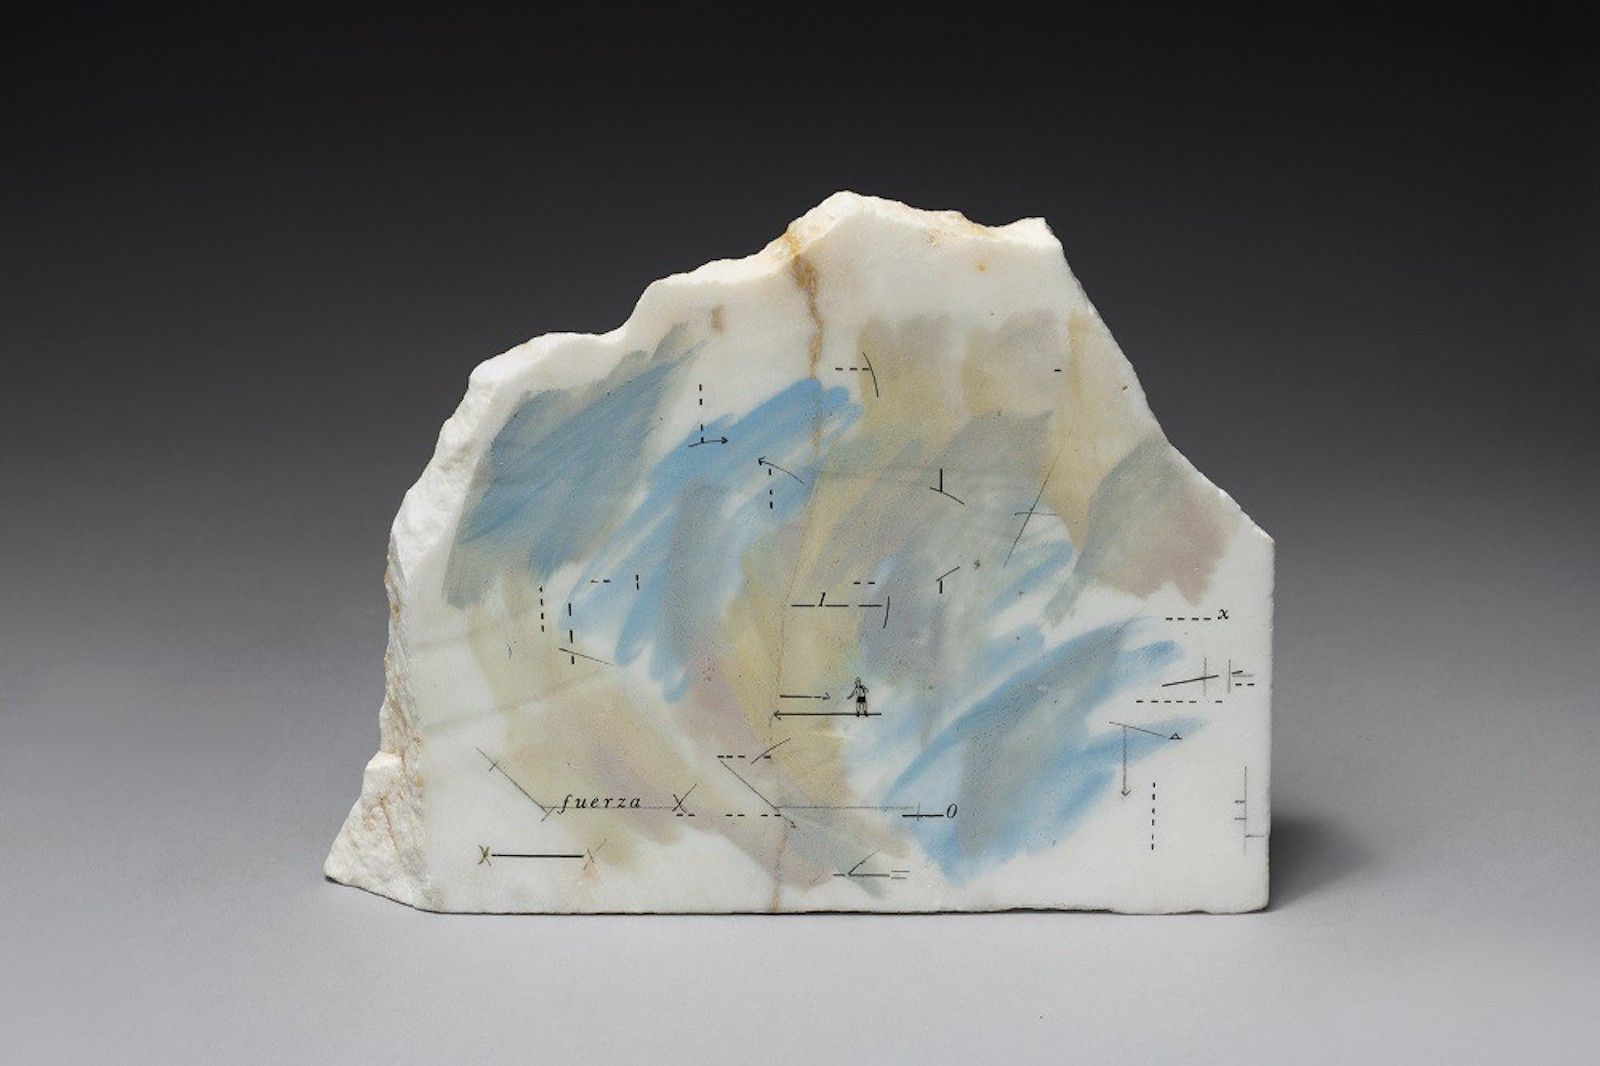 Untitled, 1980, Drawing and paint on marble, 7 7/16 x 13 3/4 x 1 15/16 in. (19 x 35 x 5 cm.)